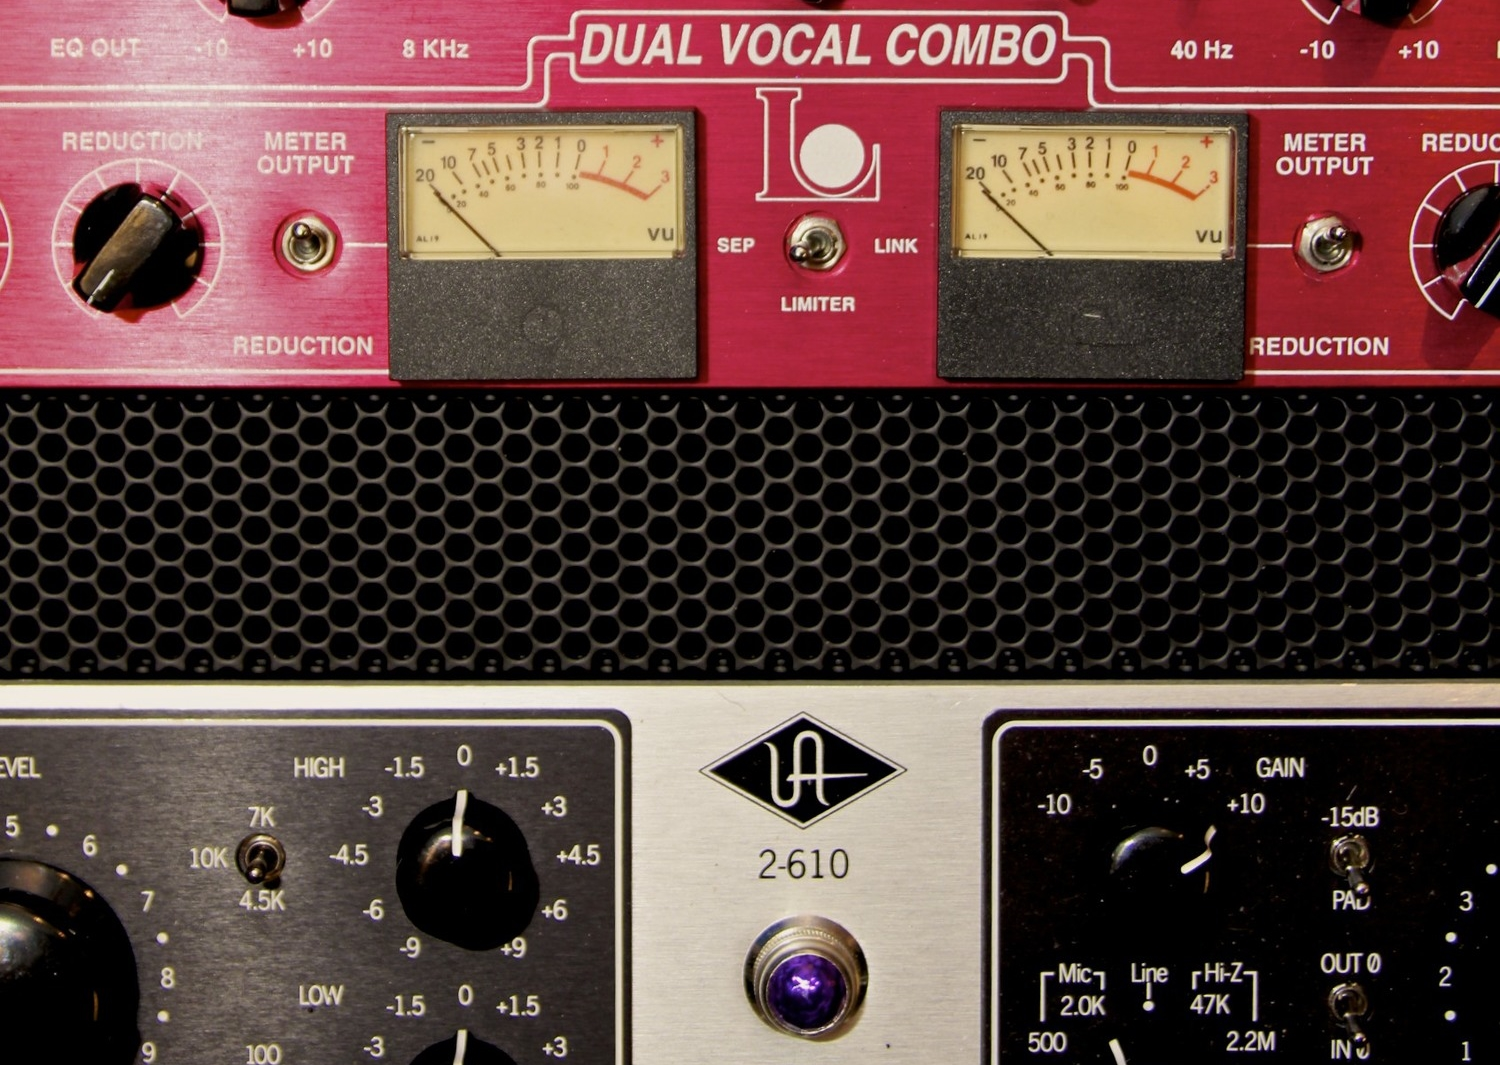 Langevin Dual Vocal Combo & Universal Audio 2-610 preamps